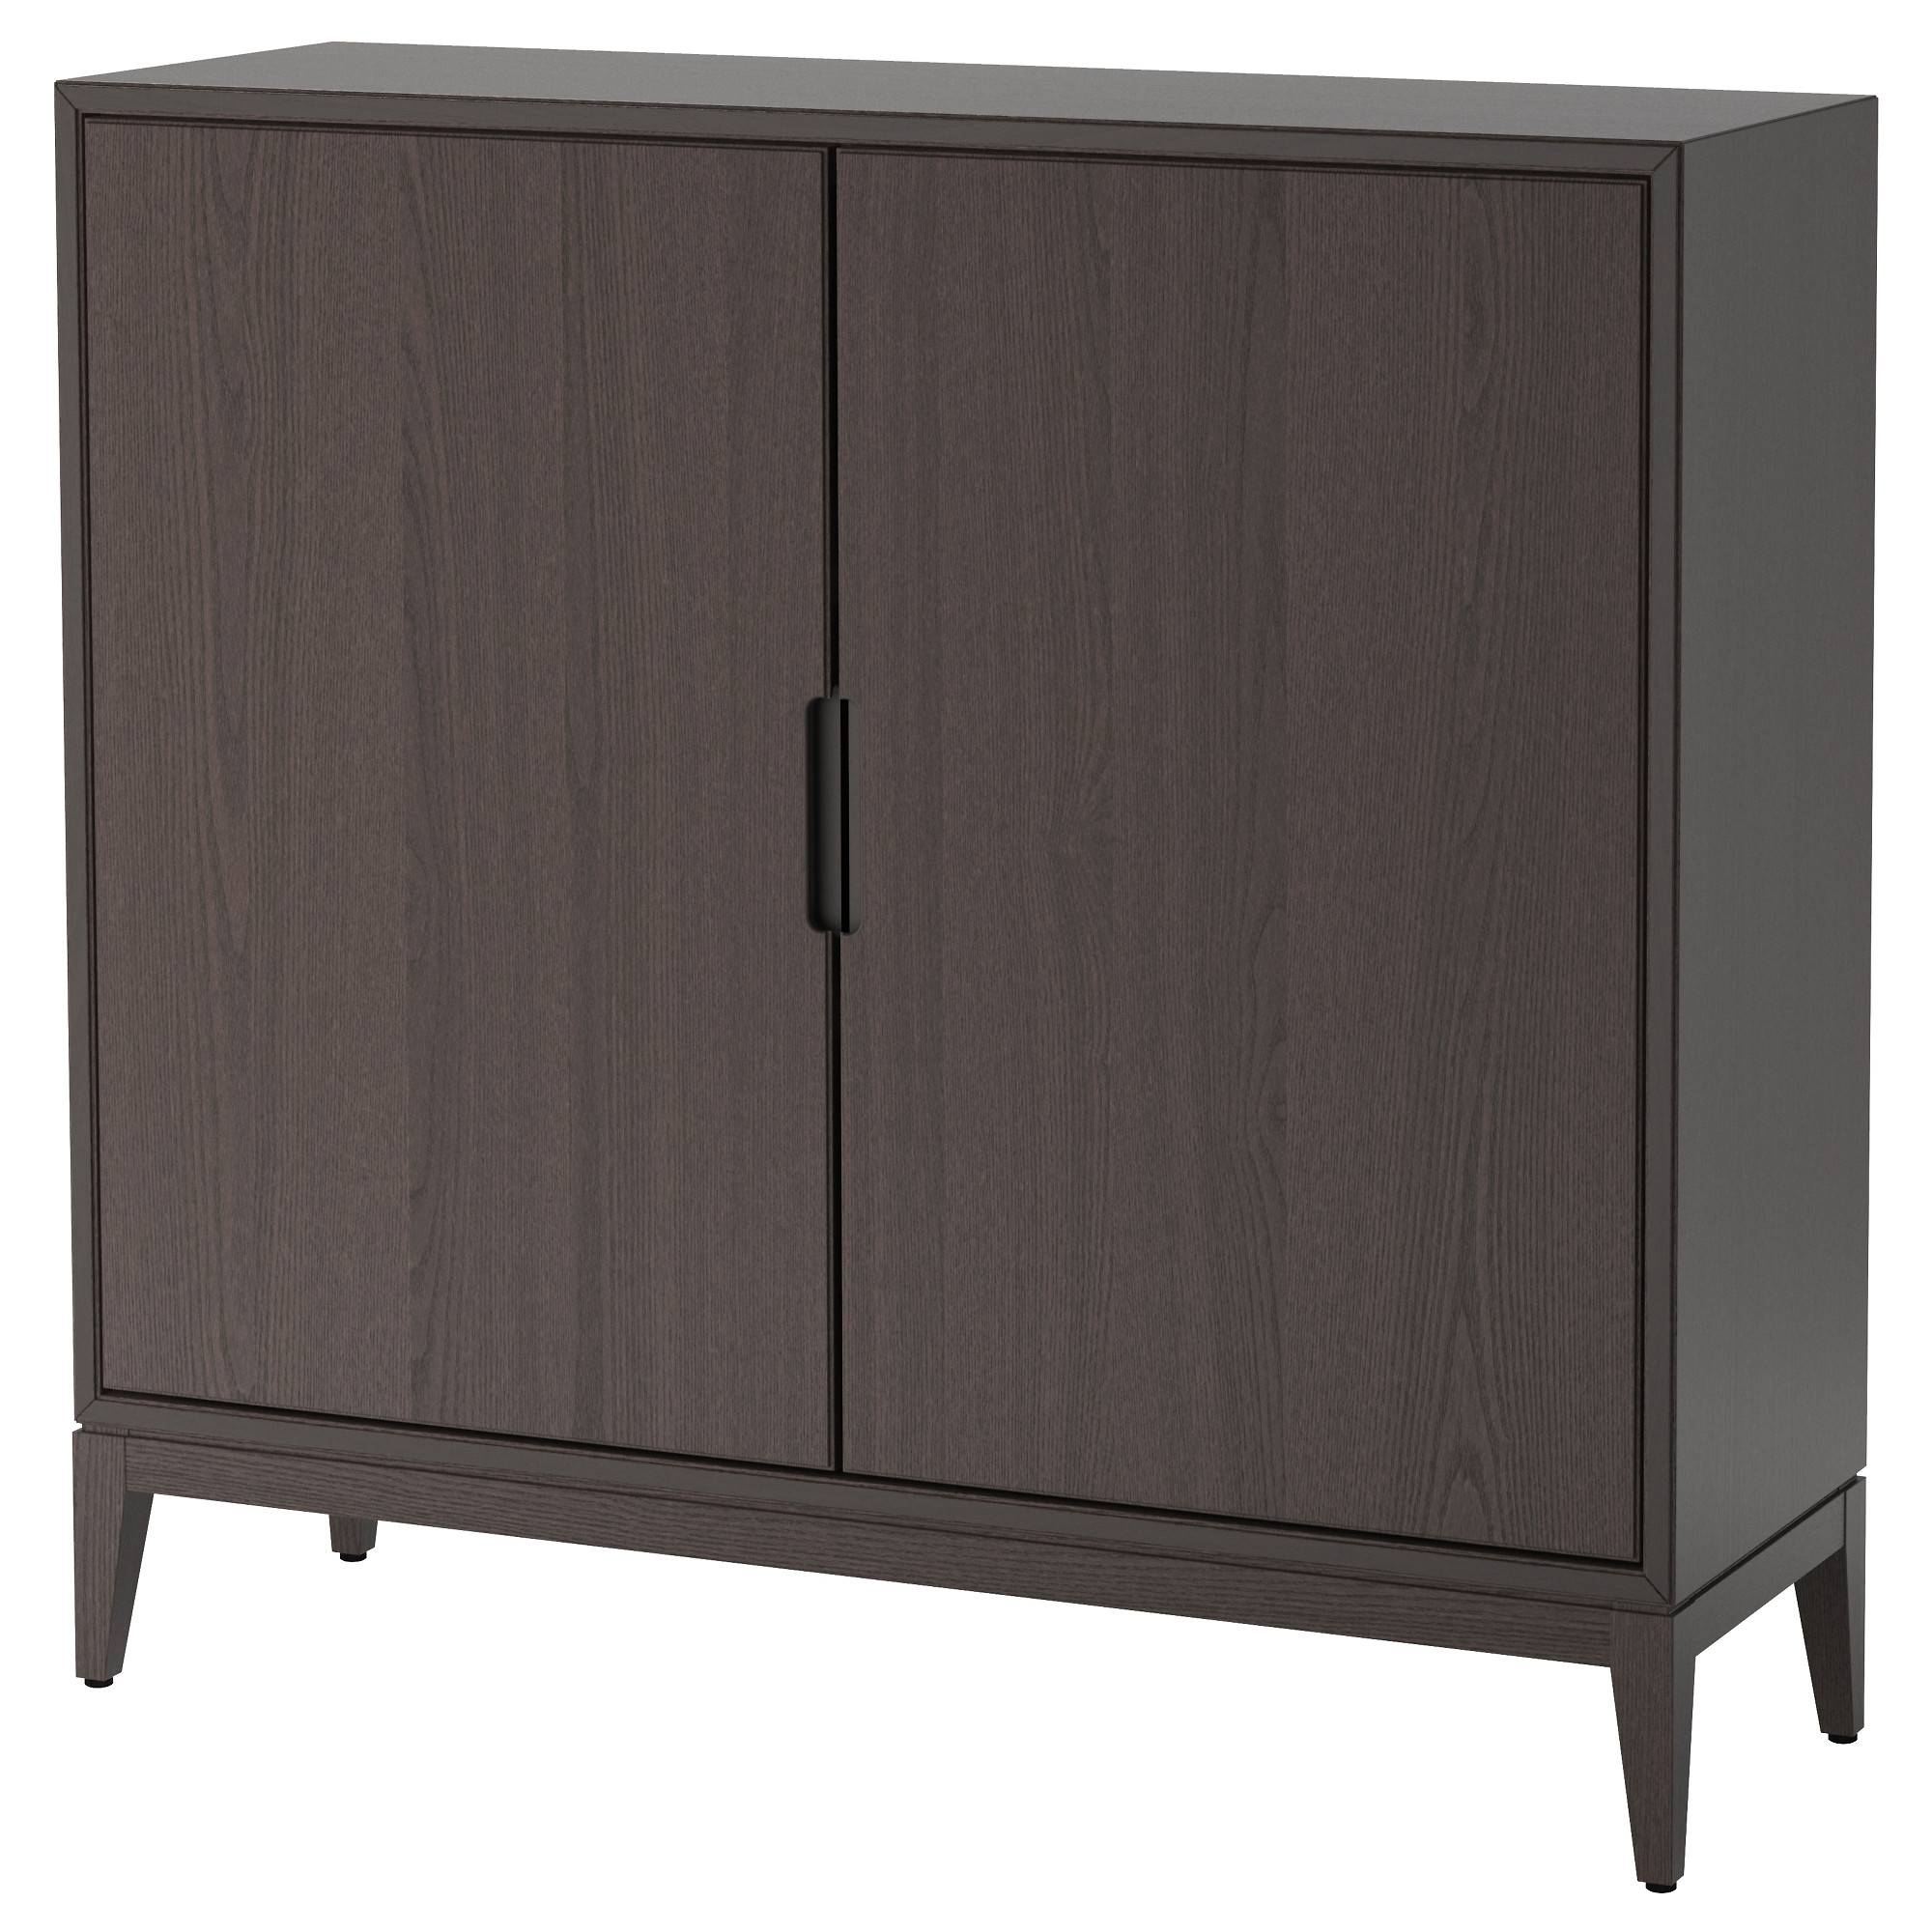 Cabinets & Sideboards - Ikea throughout Shallow Sideboard Cabinets (Image 12 of 30)